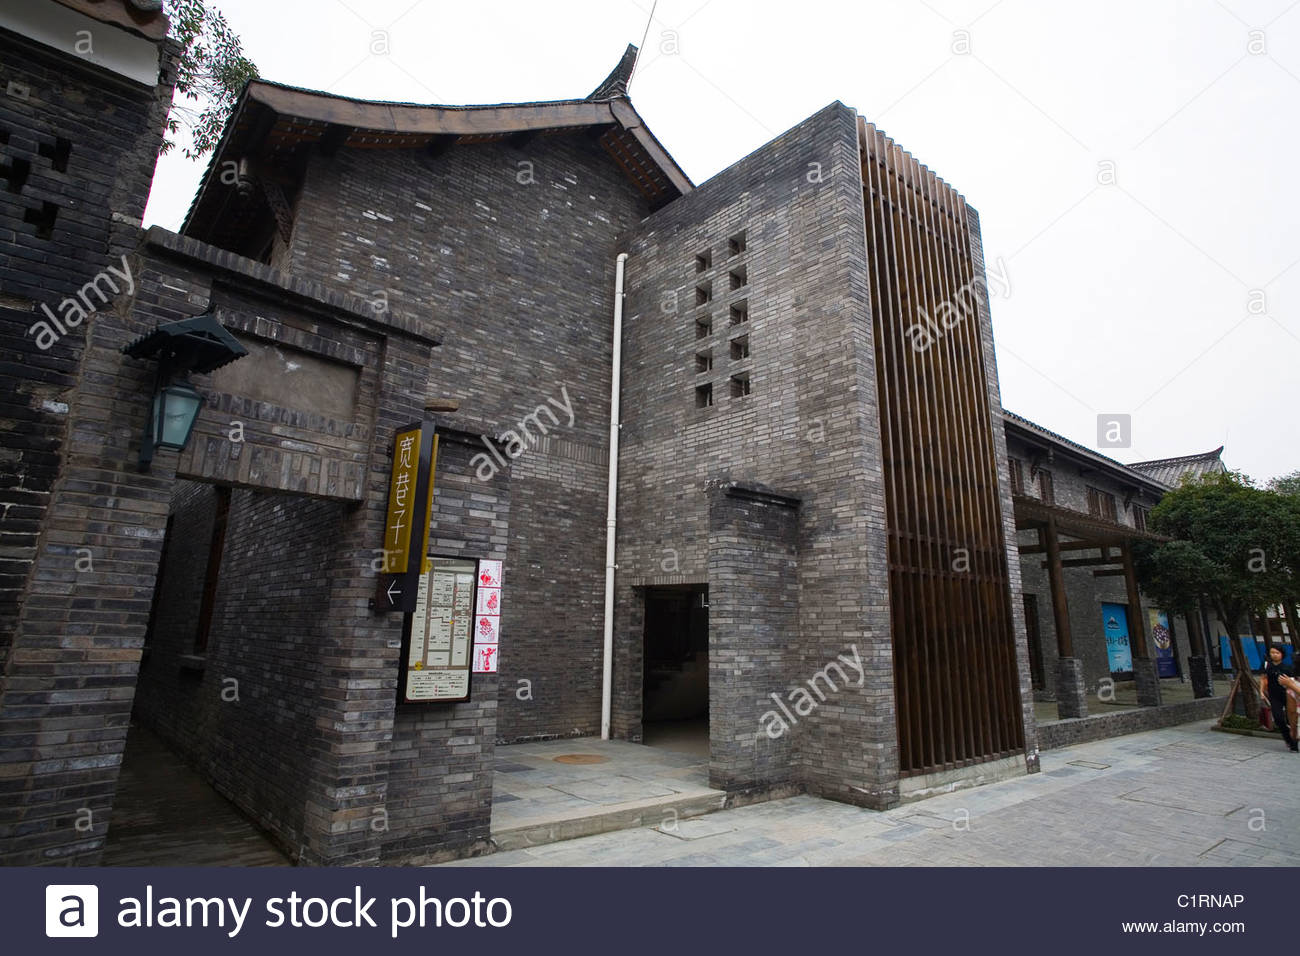 Old Chengdu City, Wide and Narrow Alleys, Kuanzhai Xiangzi, Chengdu, Sichuan Province, China - Stock Image